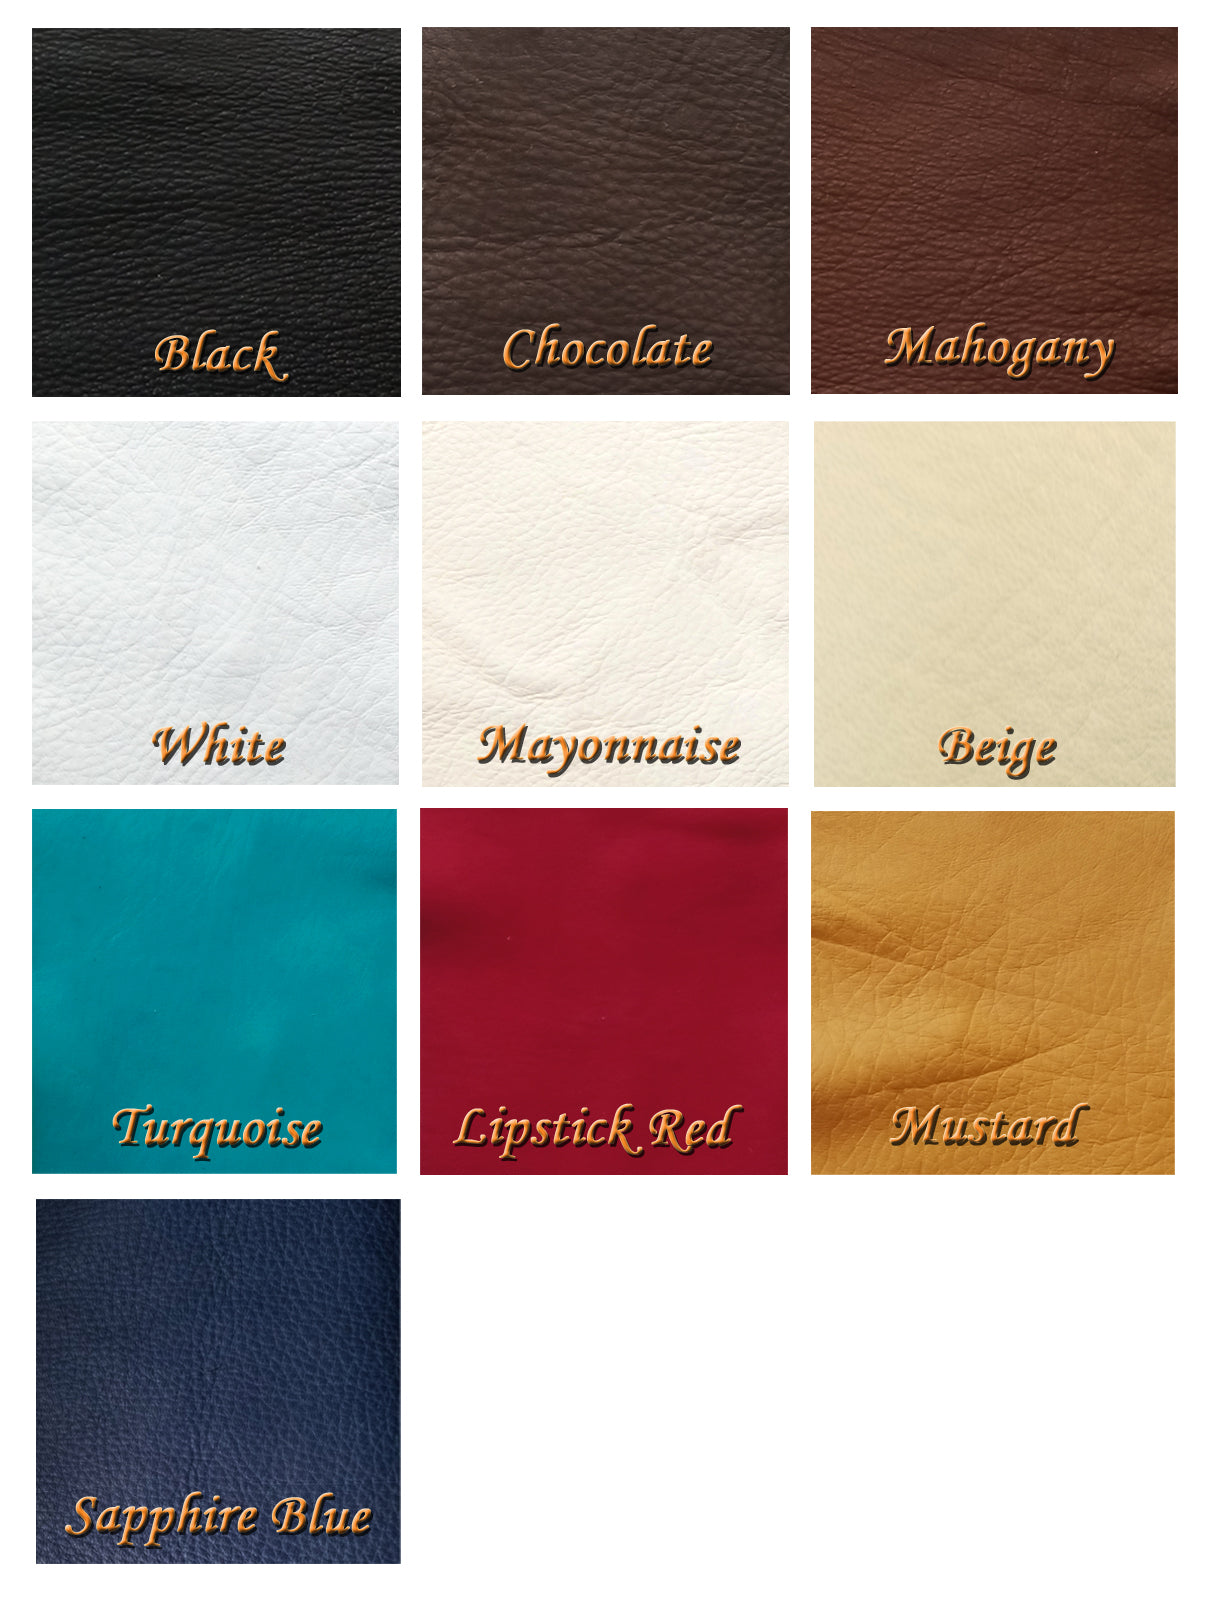 deerskin leather swatches, cuttings, deerskin leather colors offered Kyra Booty Shorts